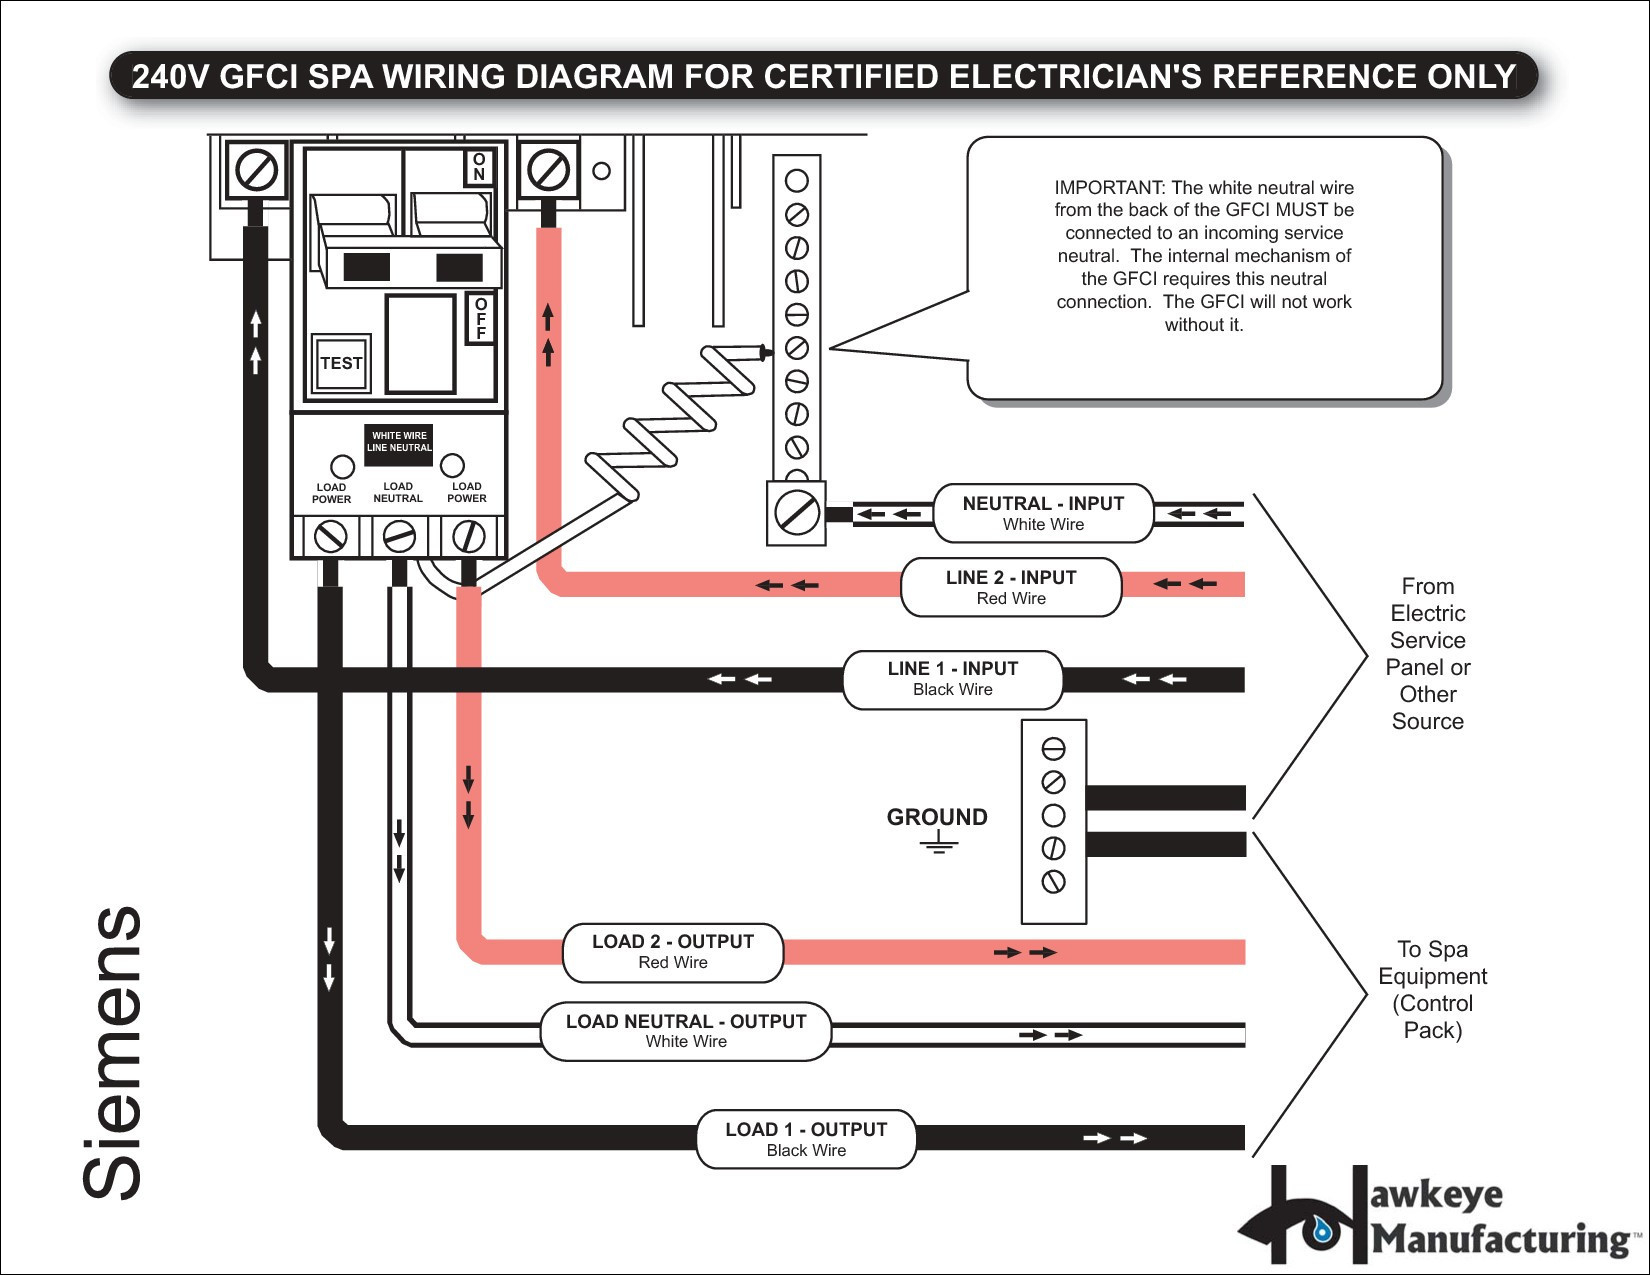 220 Circuit Wiring | Wiring Diagram on 240 volt gfci breaker diagram, 220 meter box diagram, 220v circuit diagram, 220 volt diagram, 50 amp outlet diagram, breaker box diagram,